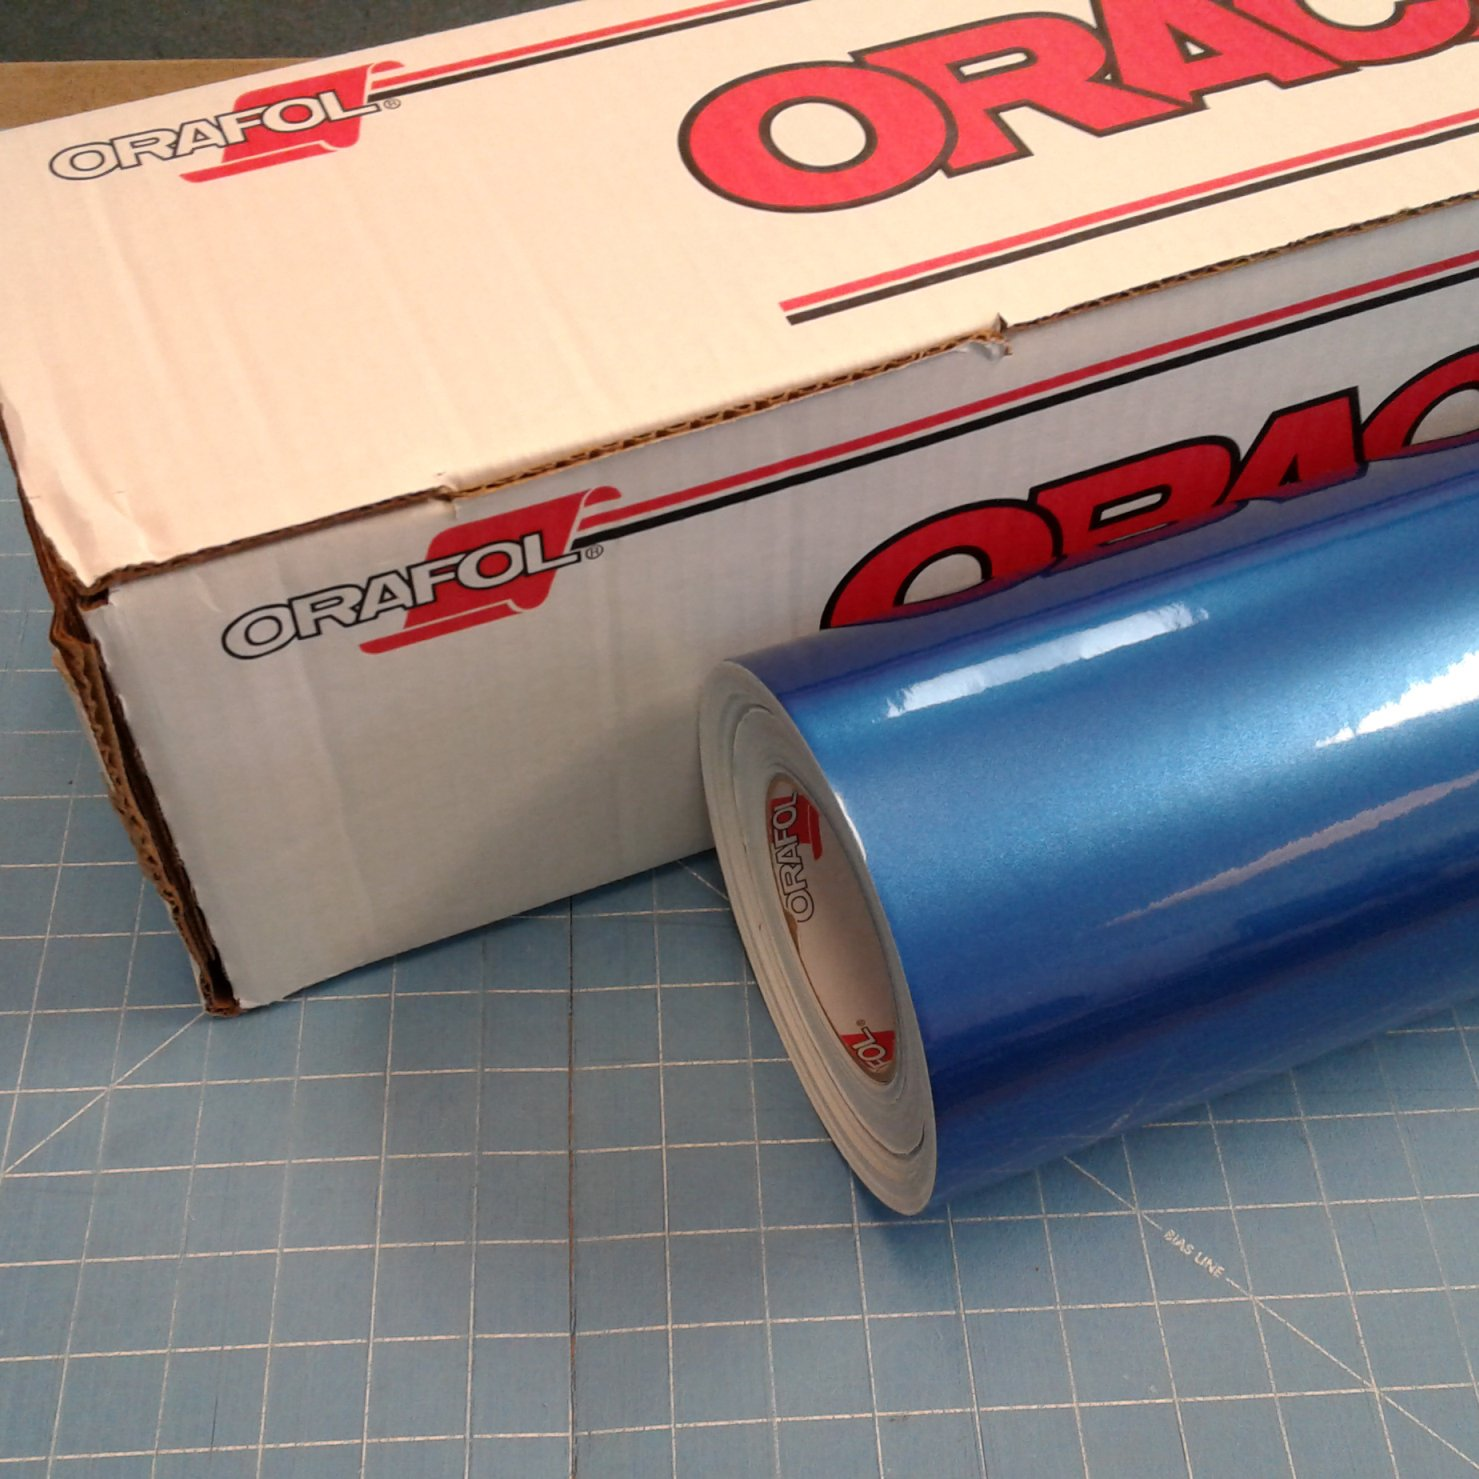 Blue Azure 24'' x 30 Ft Roll of Oracal 951 Premium Metallic Vinyl for Craft Cutters and Vinyl Sign Cutters